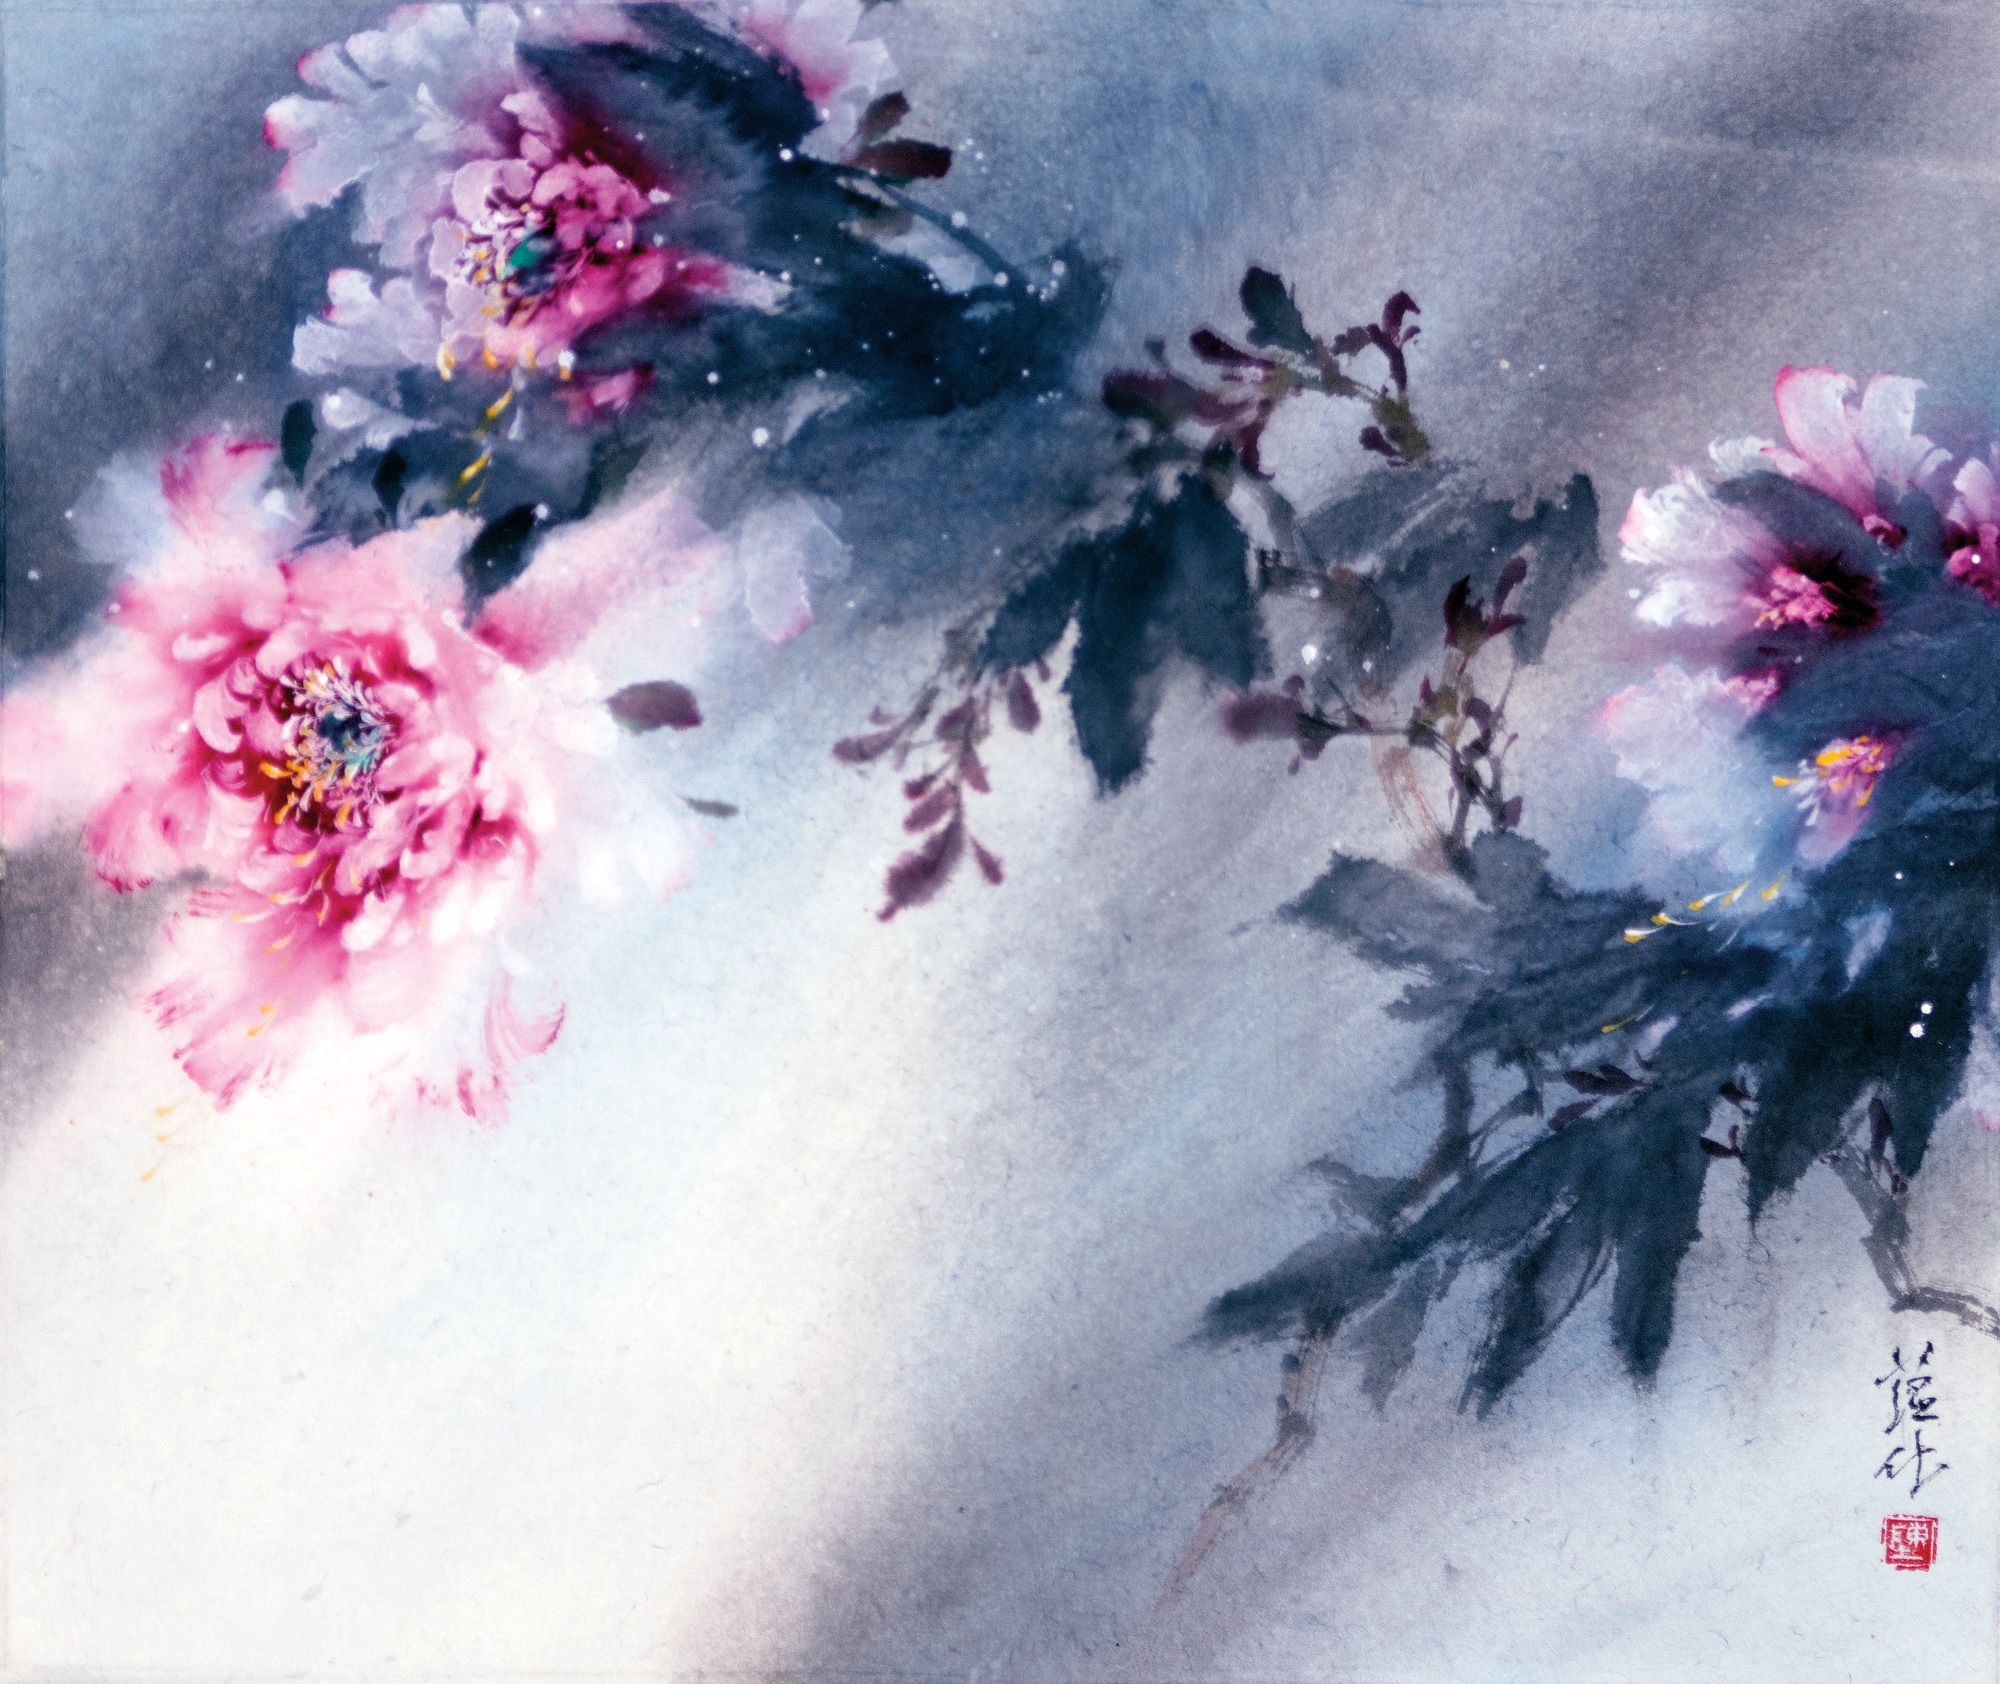 Watercolor art history brush - Chinese Brush Painting By Vancouver Artist James Tan This Lingnan Style Of Paintings Is Taught By James Tan James Gives Lectures And Demonstrations On The